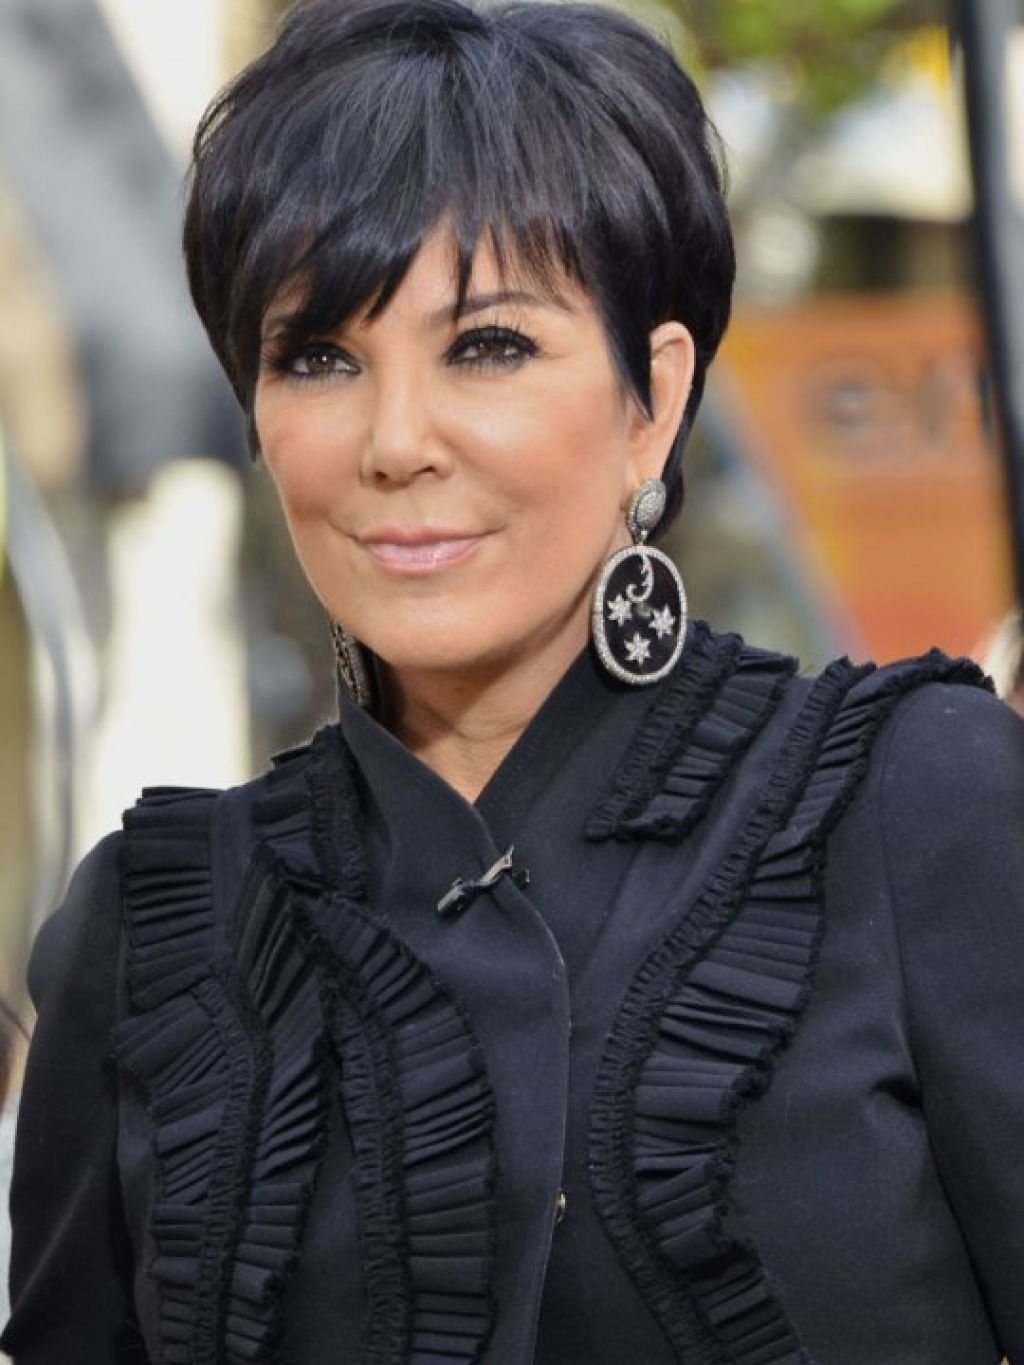 Hairstyles Kris Jenner Simple Short Hair Style , This Style Is Using For Short Haircuts Kris Jenner (View 9 of 25)